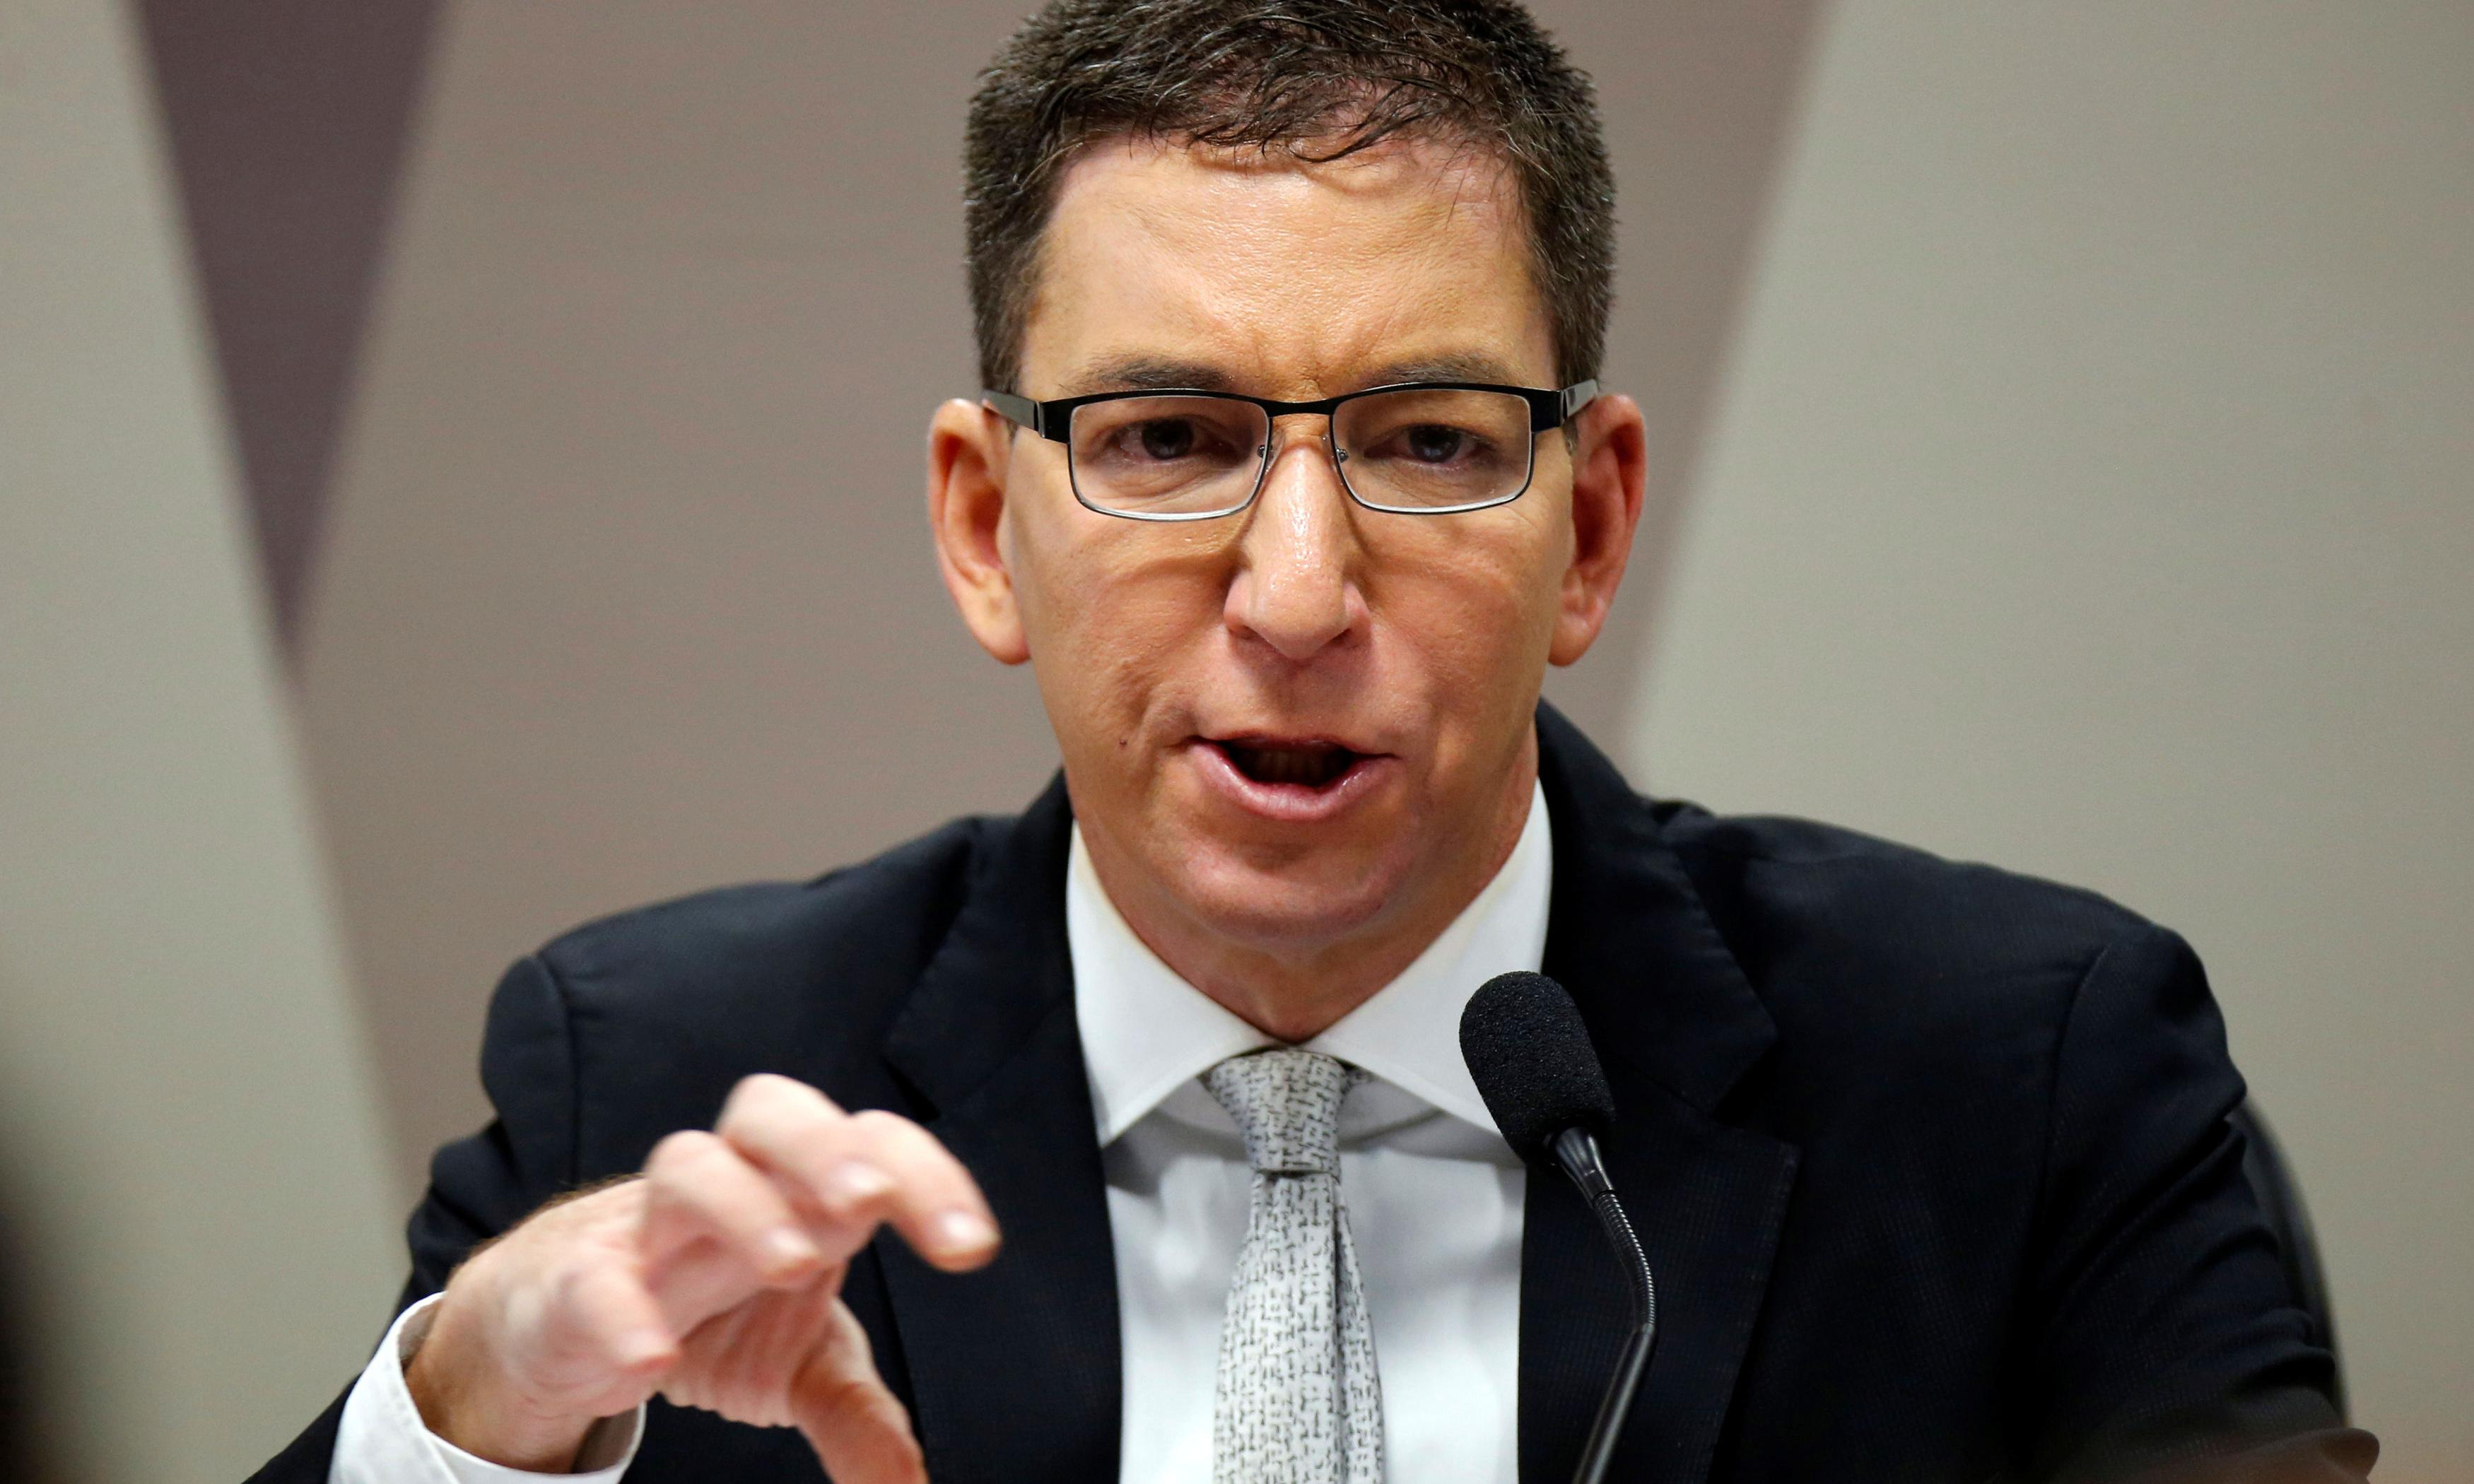 Brazil must reveal investigations into journalist Glenn Greenwald, court says